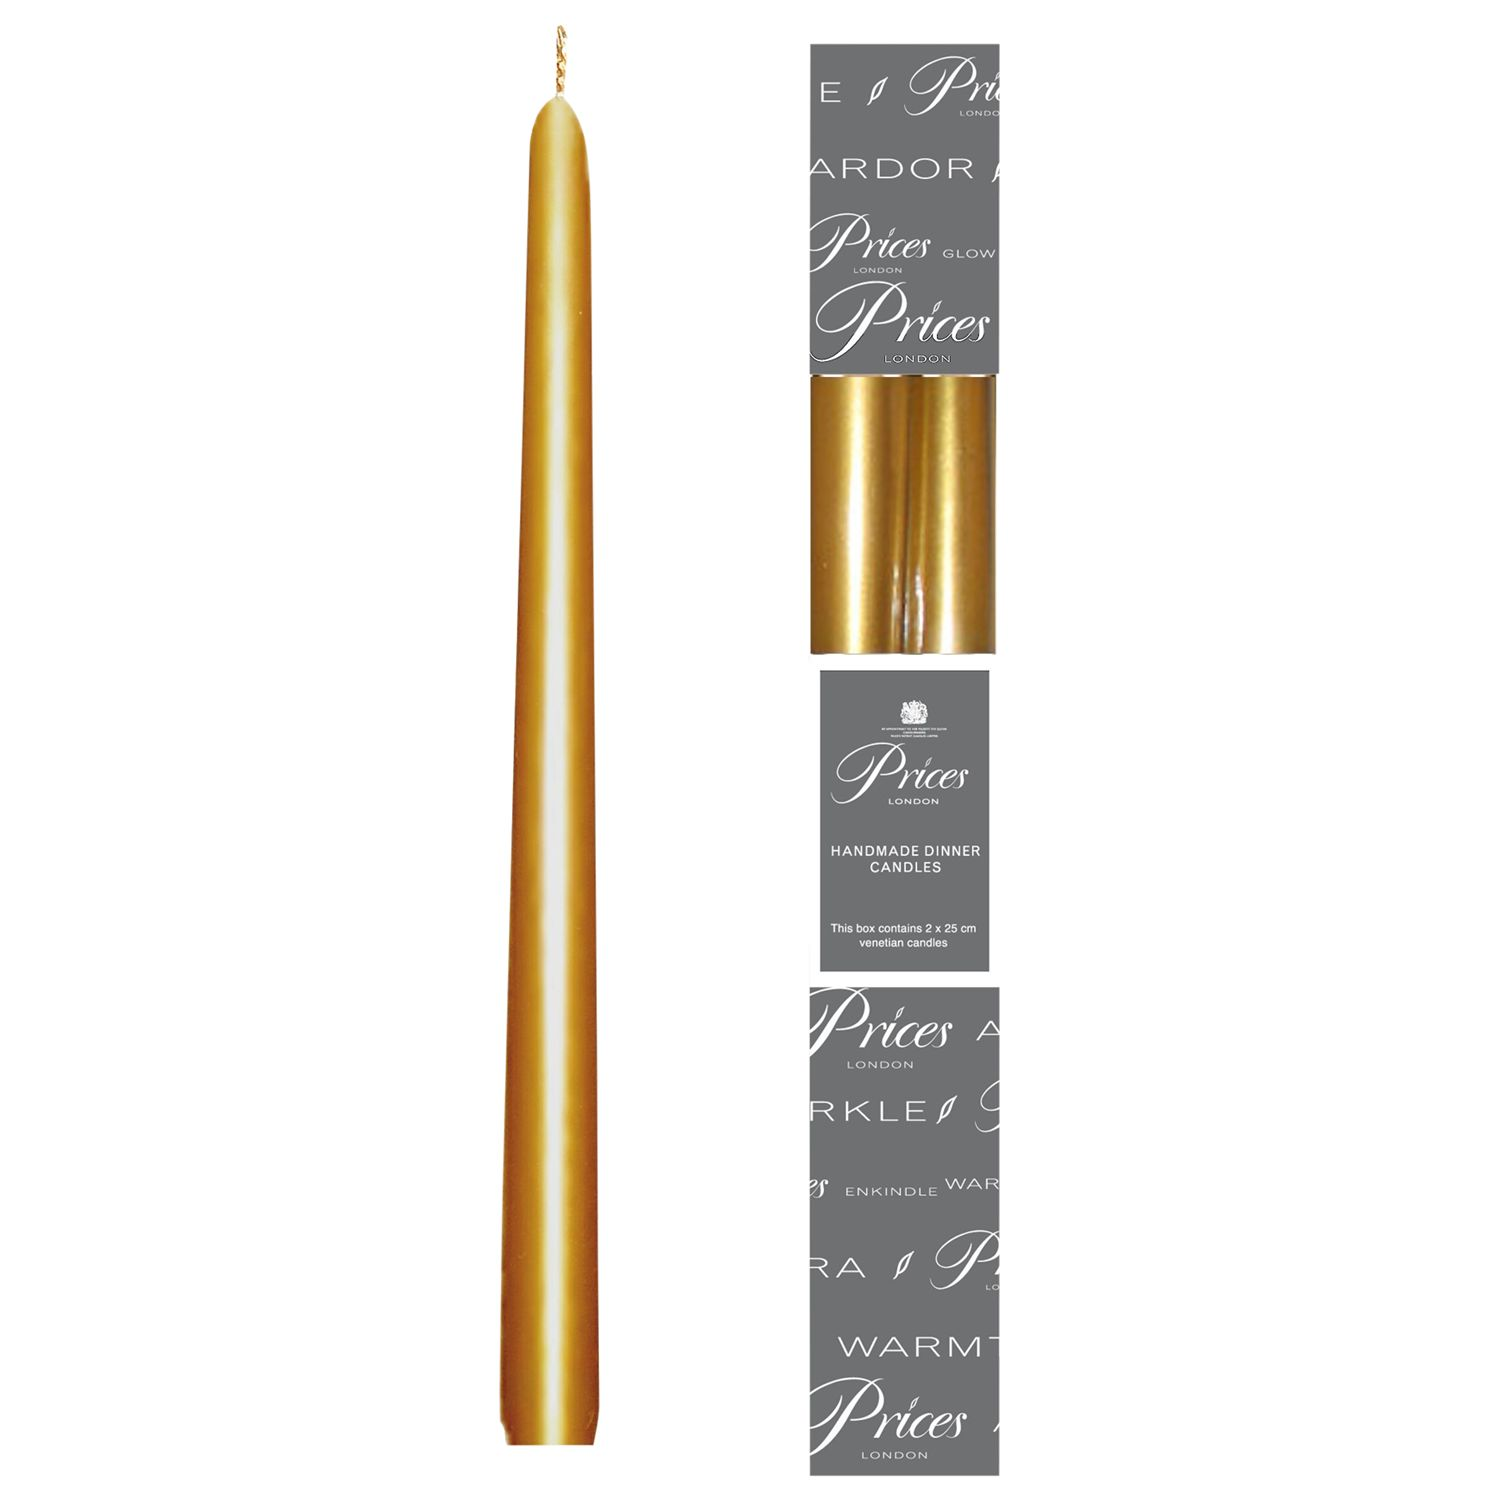 Price's Price's Dinner Candles, Pack of 2, Gold